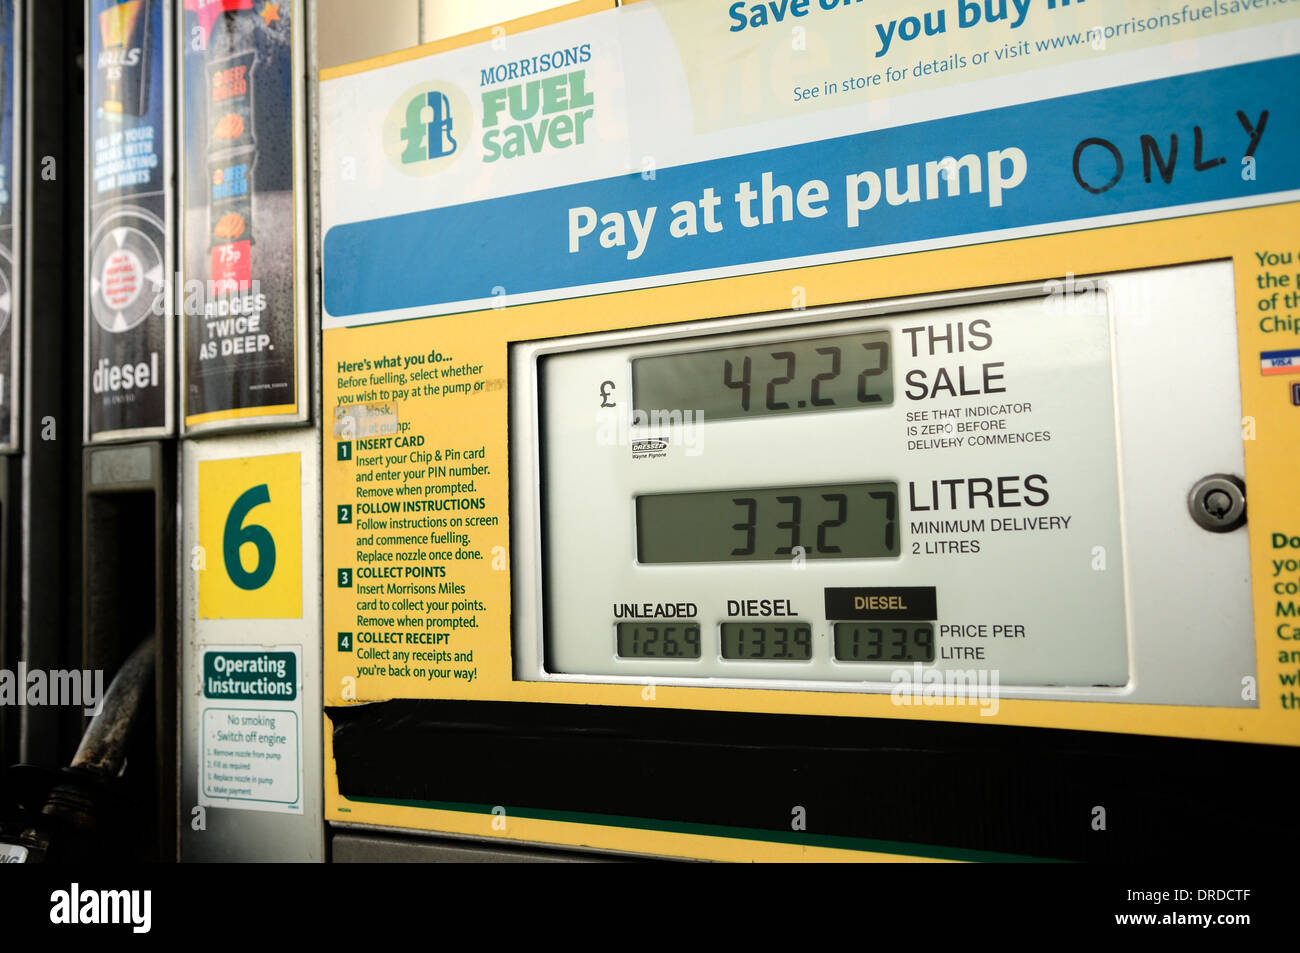 Morrisons fuel pay at the pump Stock Photo: 66063663 - Alamy